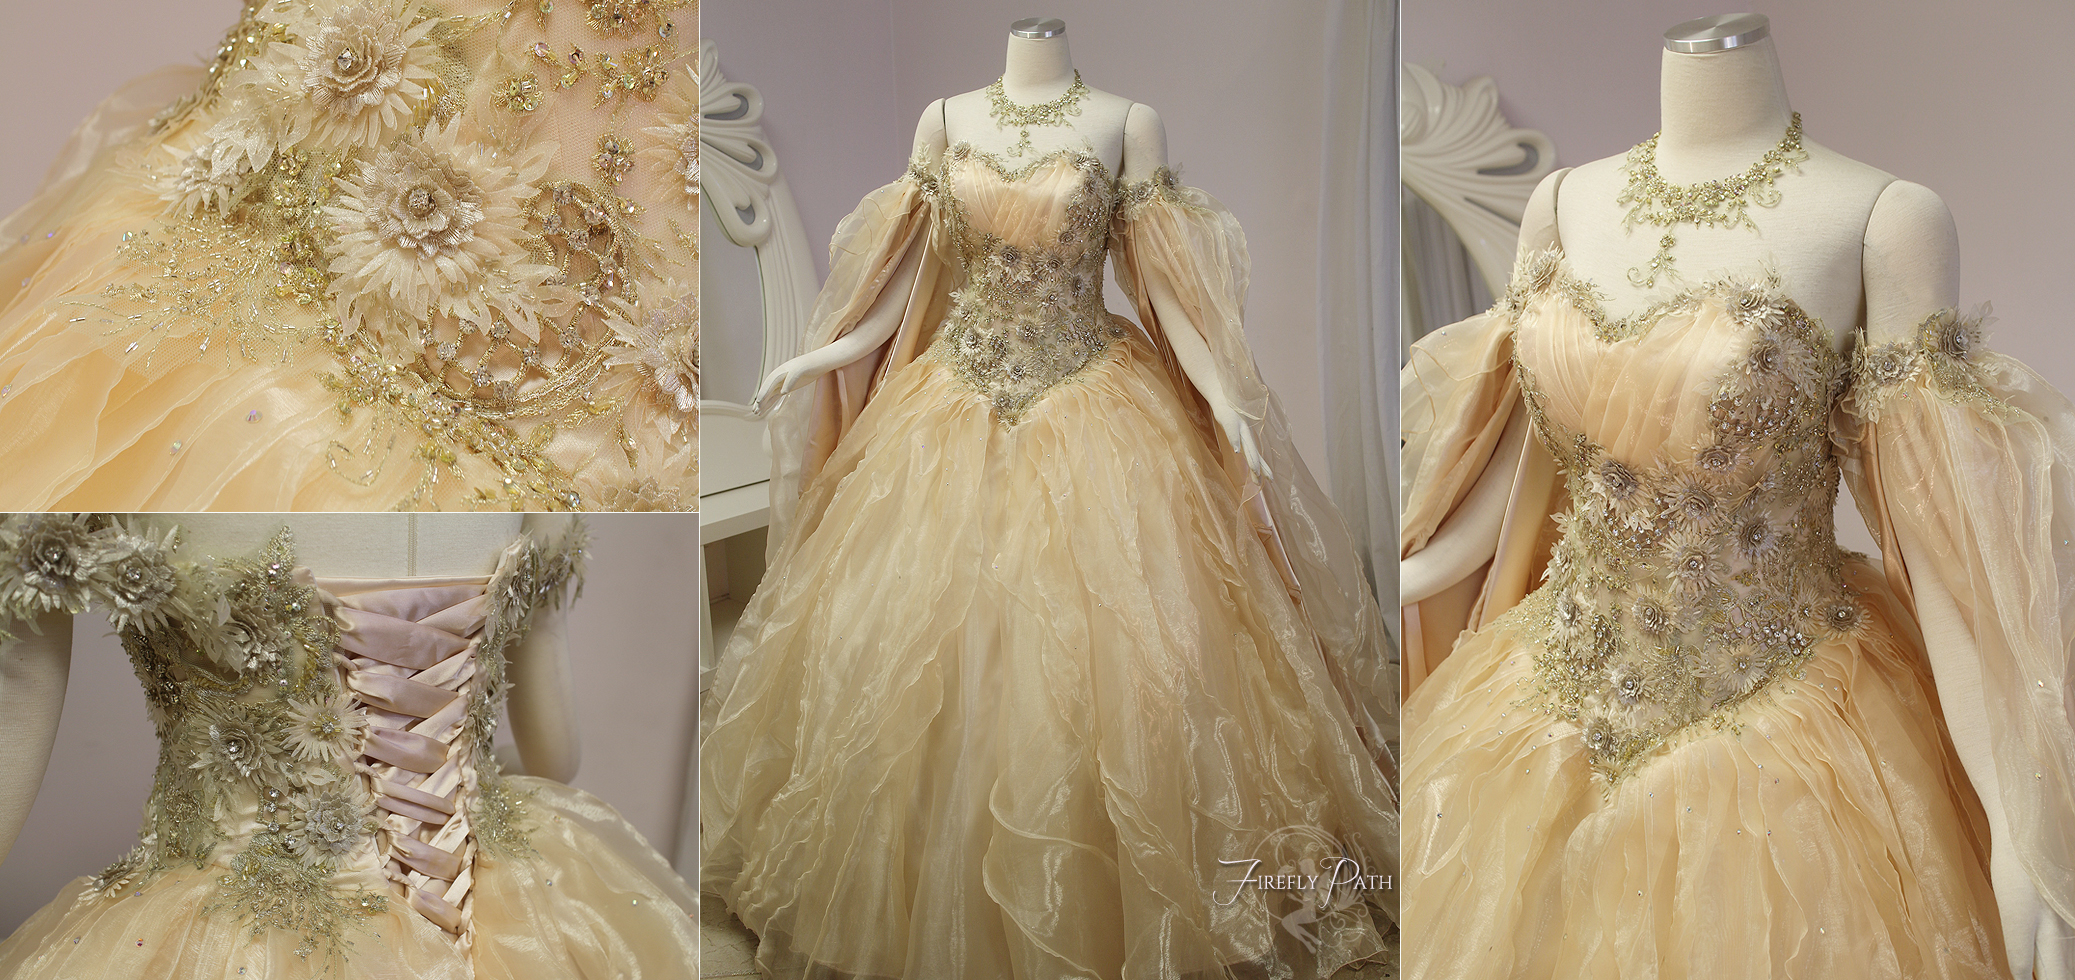 champagne peach fantasy bridal gown by firefly path on